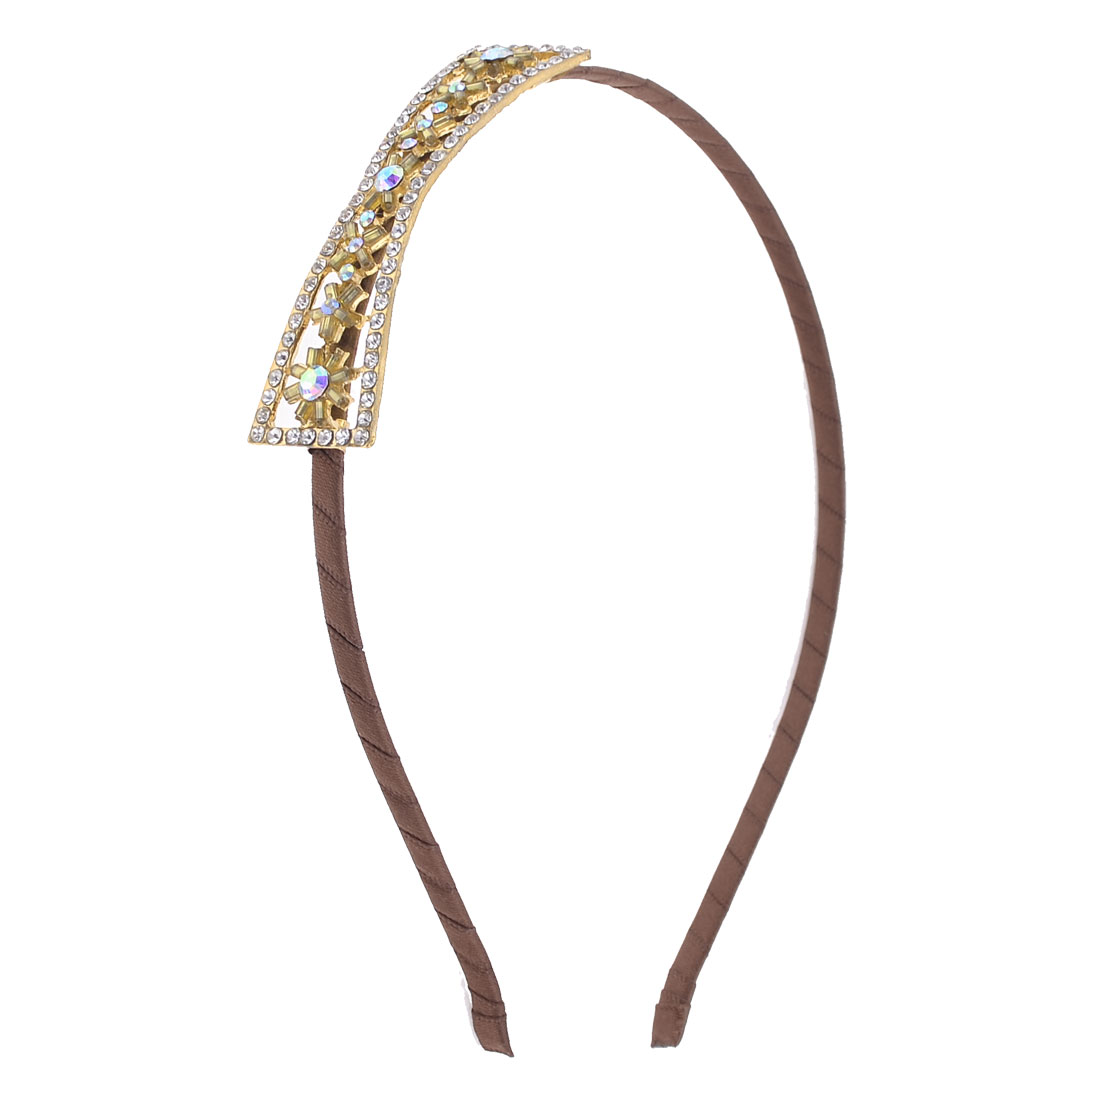 Rhinestone Detail Bowknot Adorn Arch Bridge Shape Metal Hair Hoop Brown